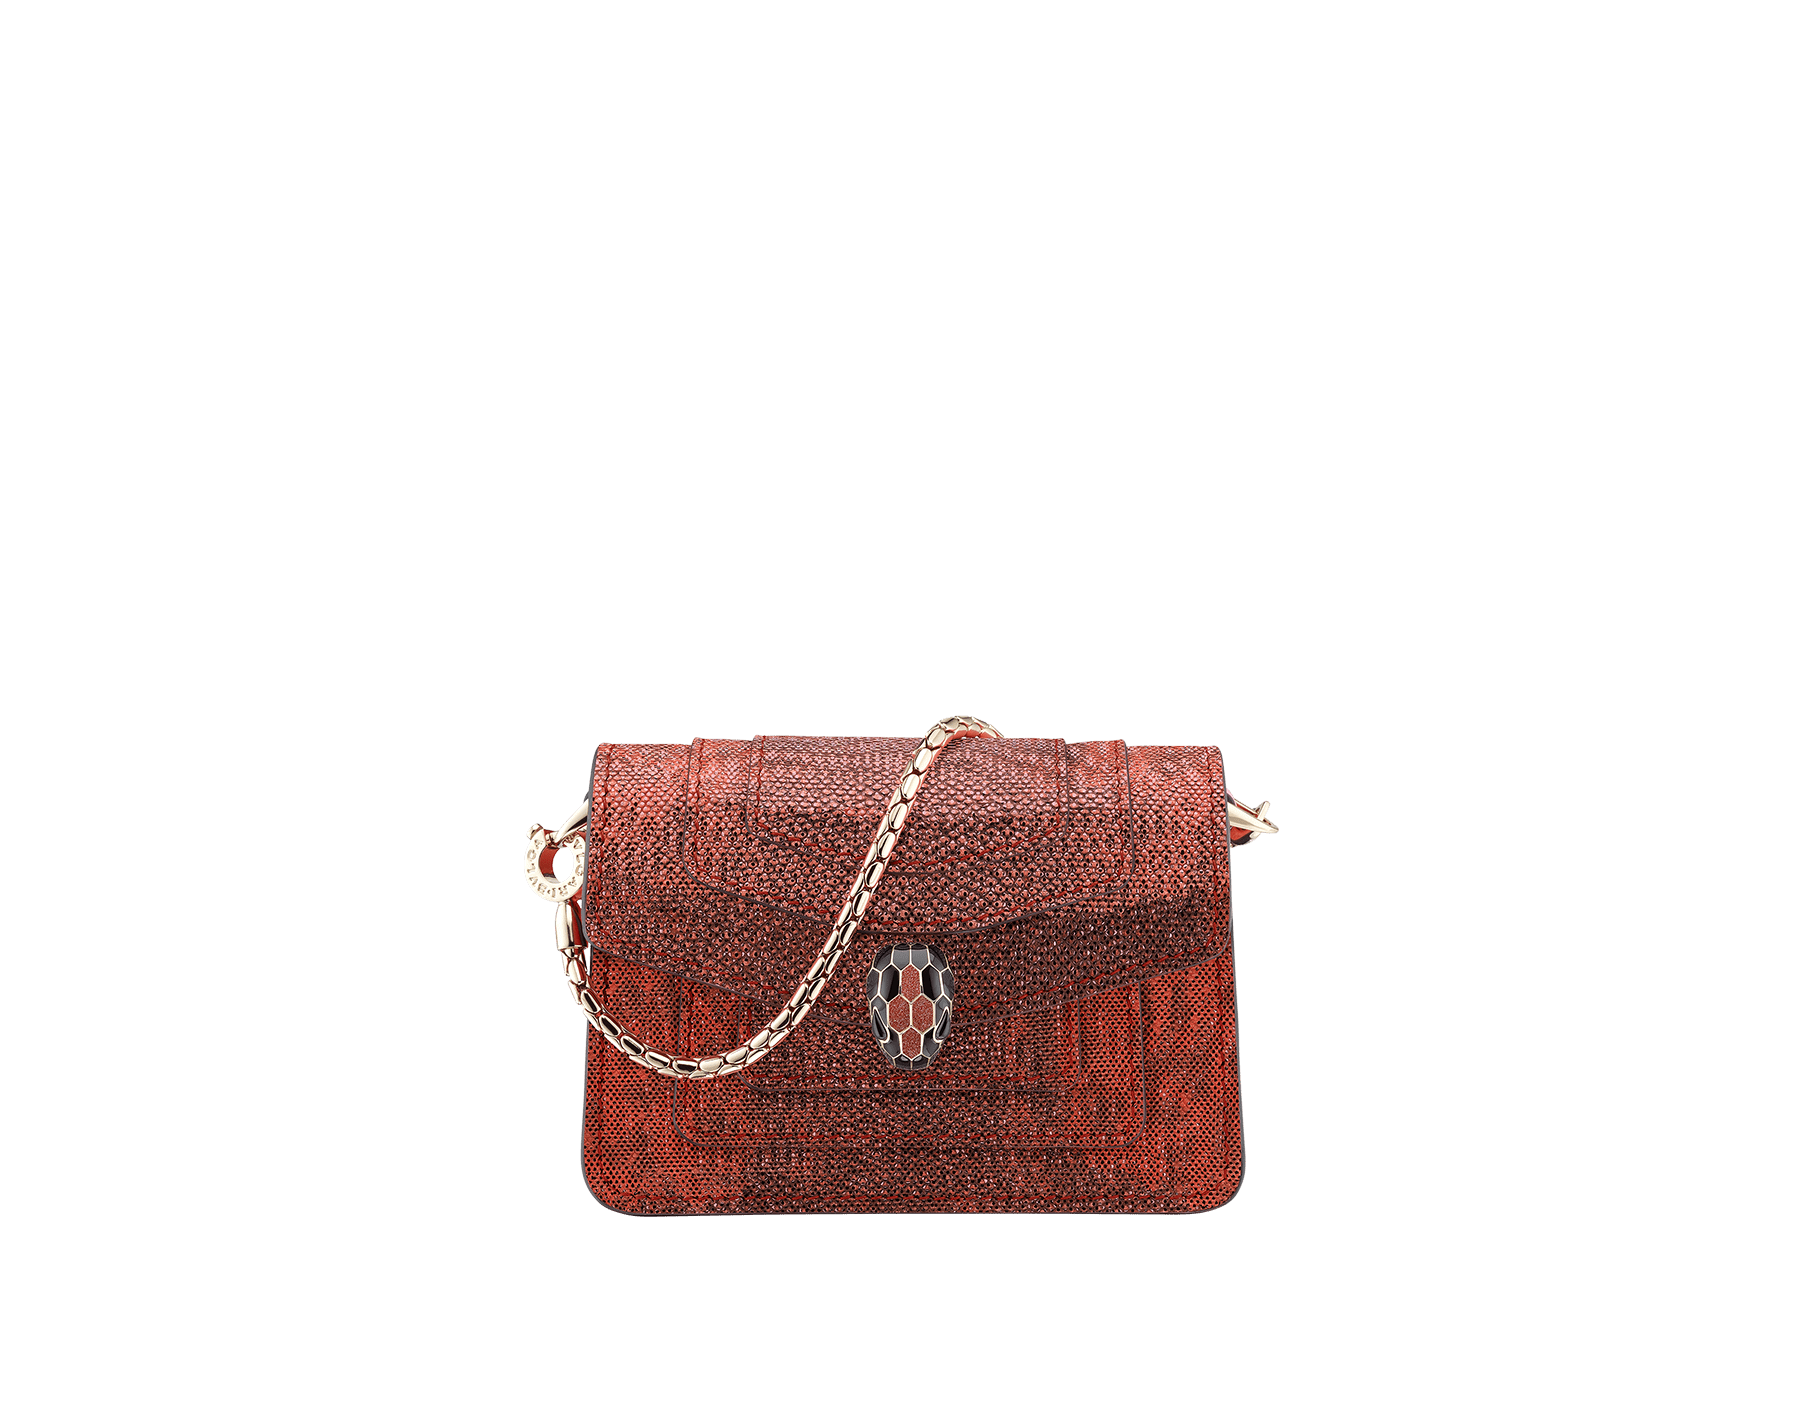 Bag charm Serpenti Forever miniature in ruby red metallic karung skin, with black calf leather lining. Iconic brass light gold plated snakehead stud closure in black and glitter red enamel, with black enamel eyes 287433 image 1